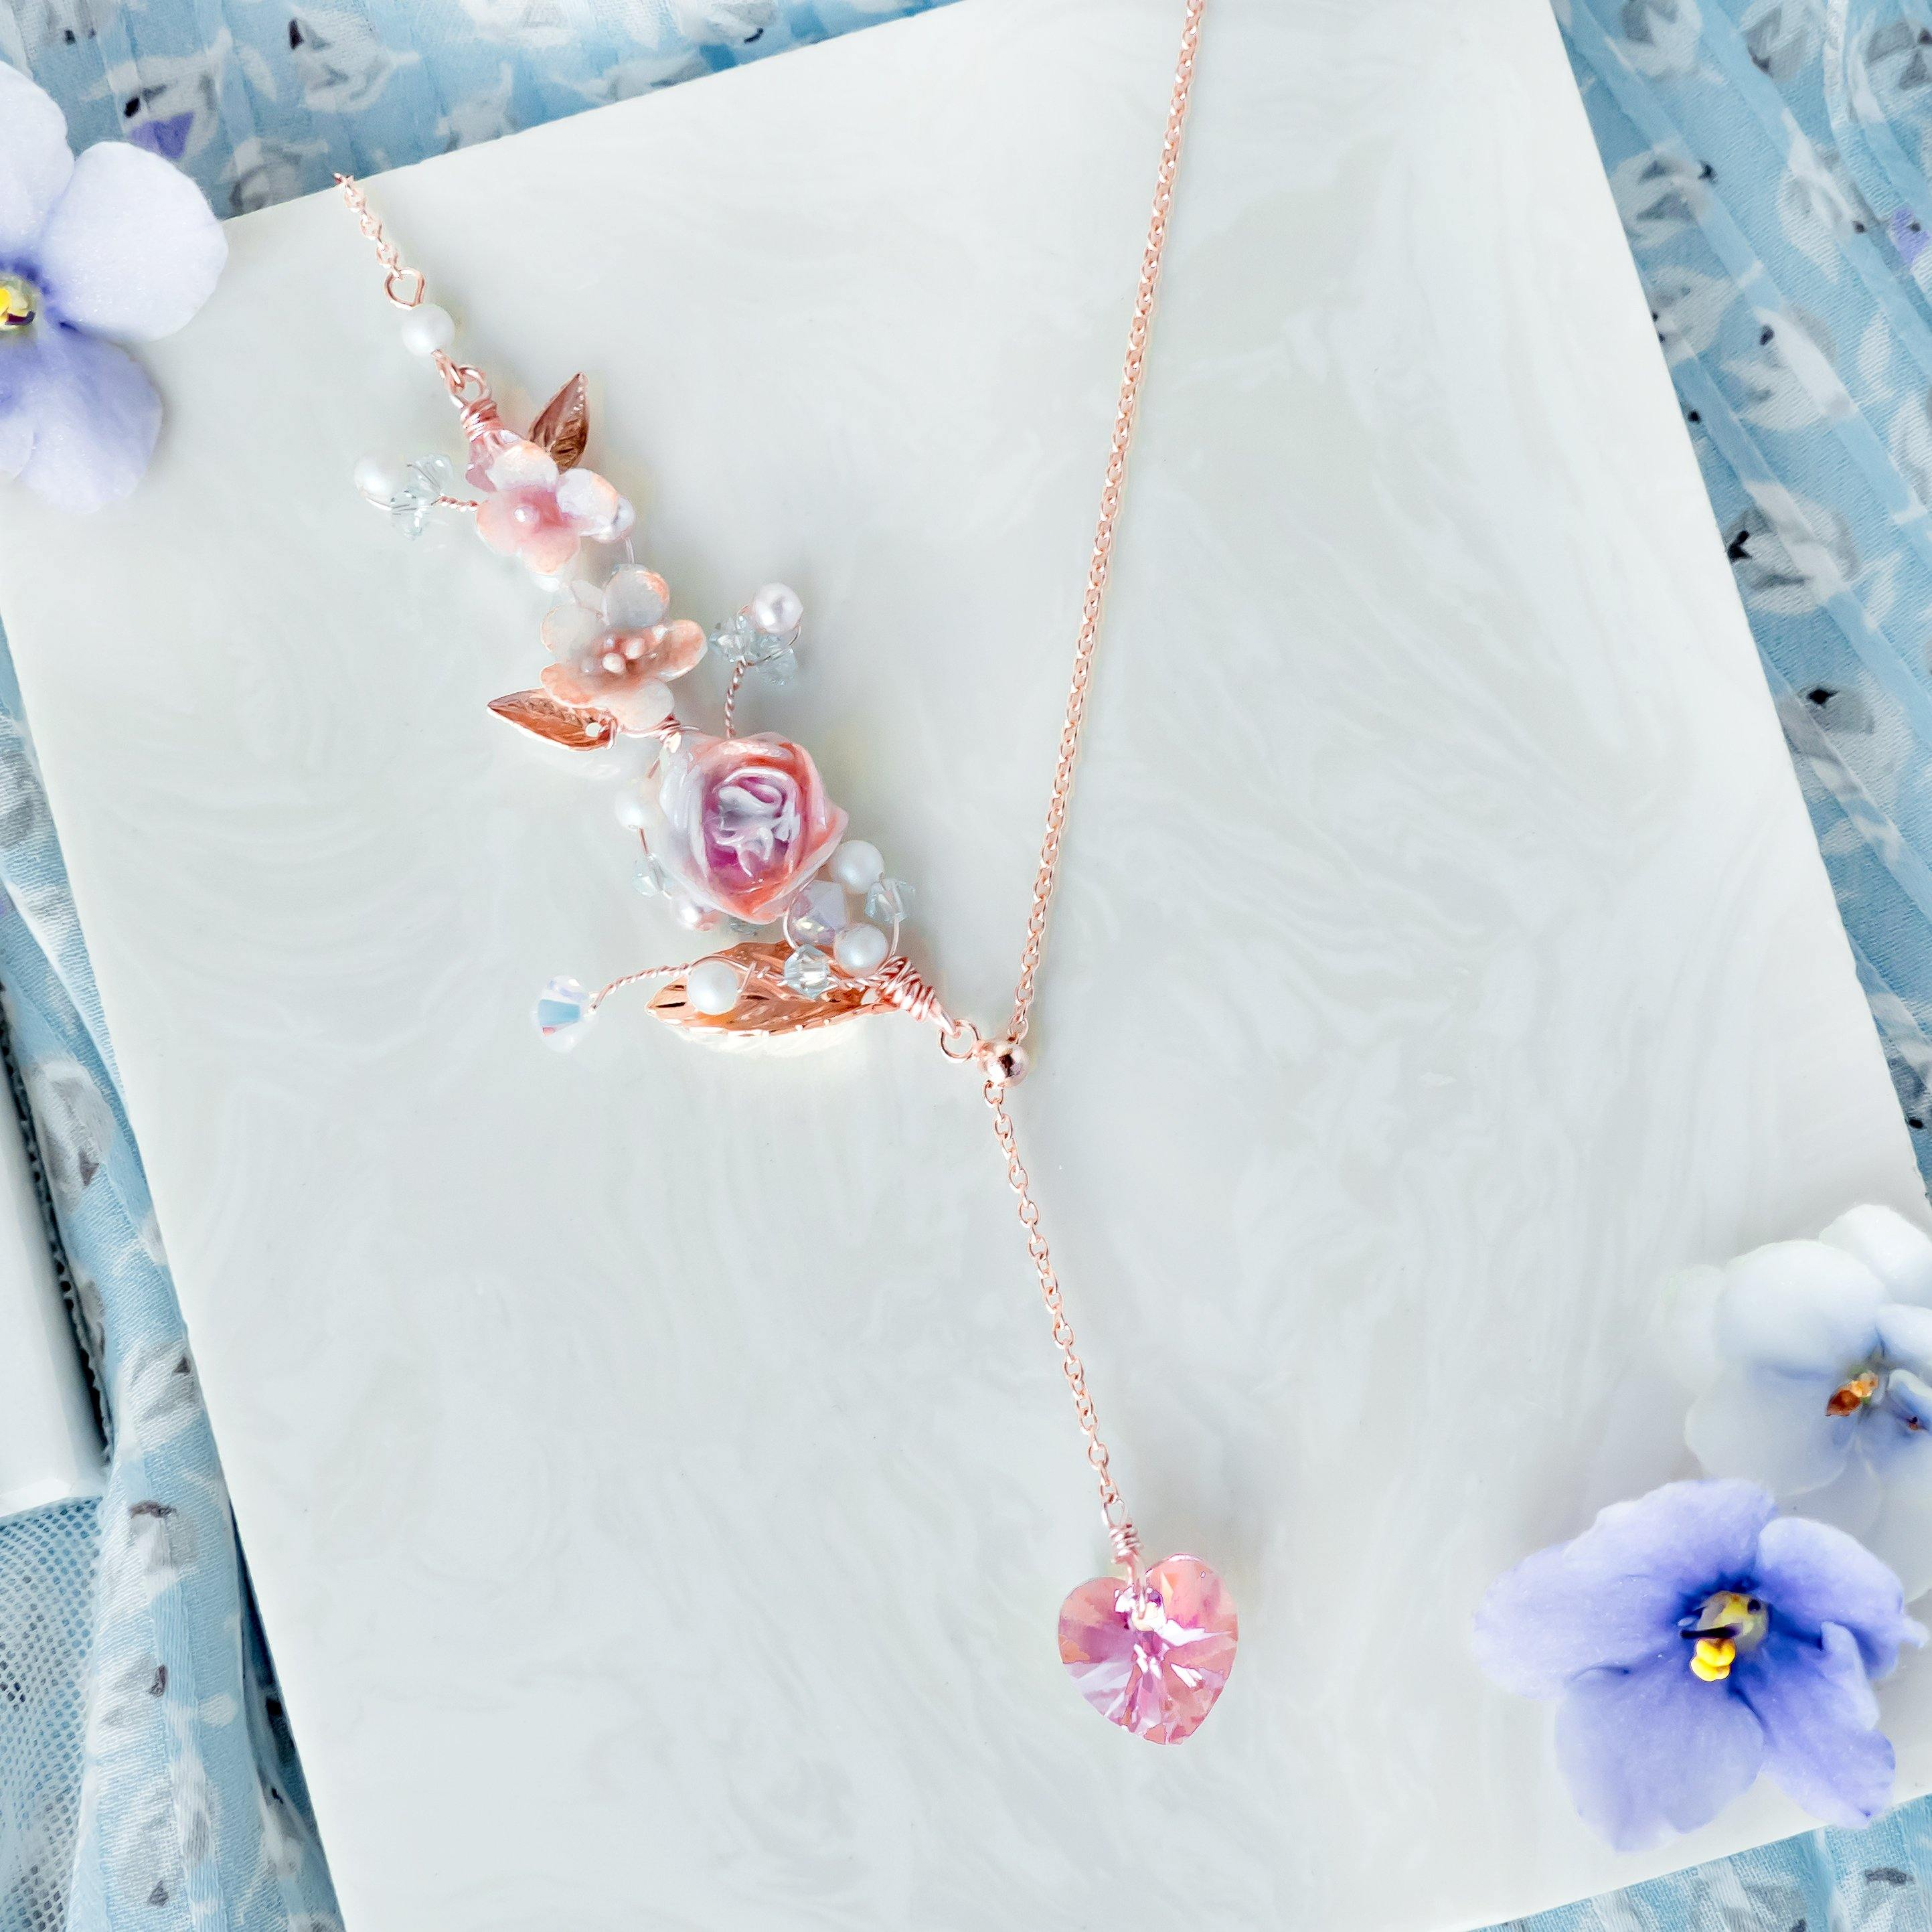 #1 ZODIAC Aquarius Garden Rose Necklace